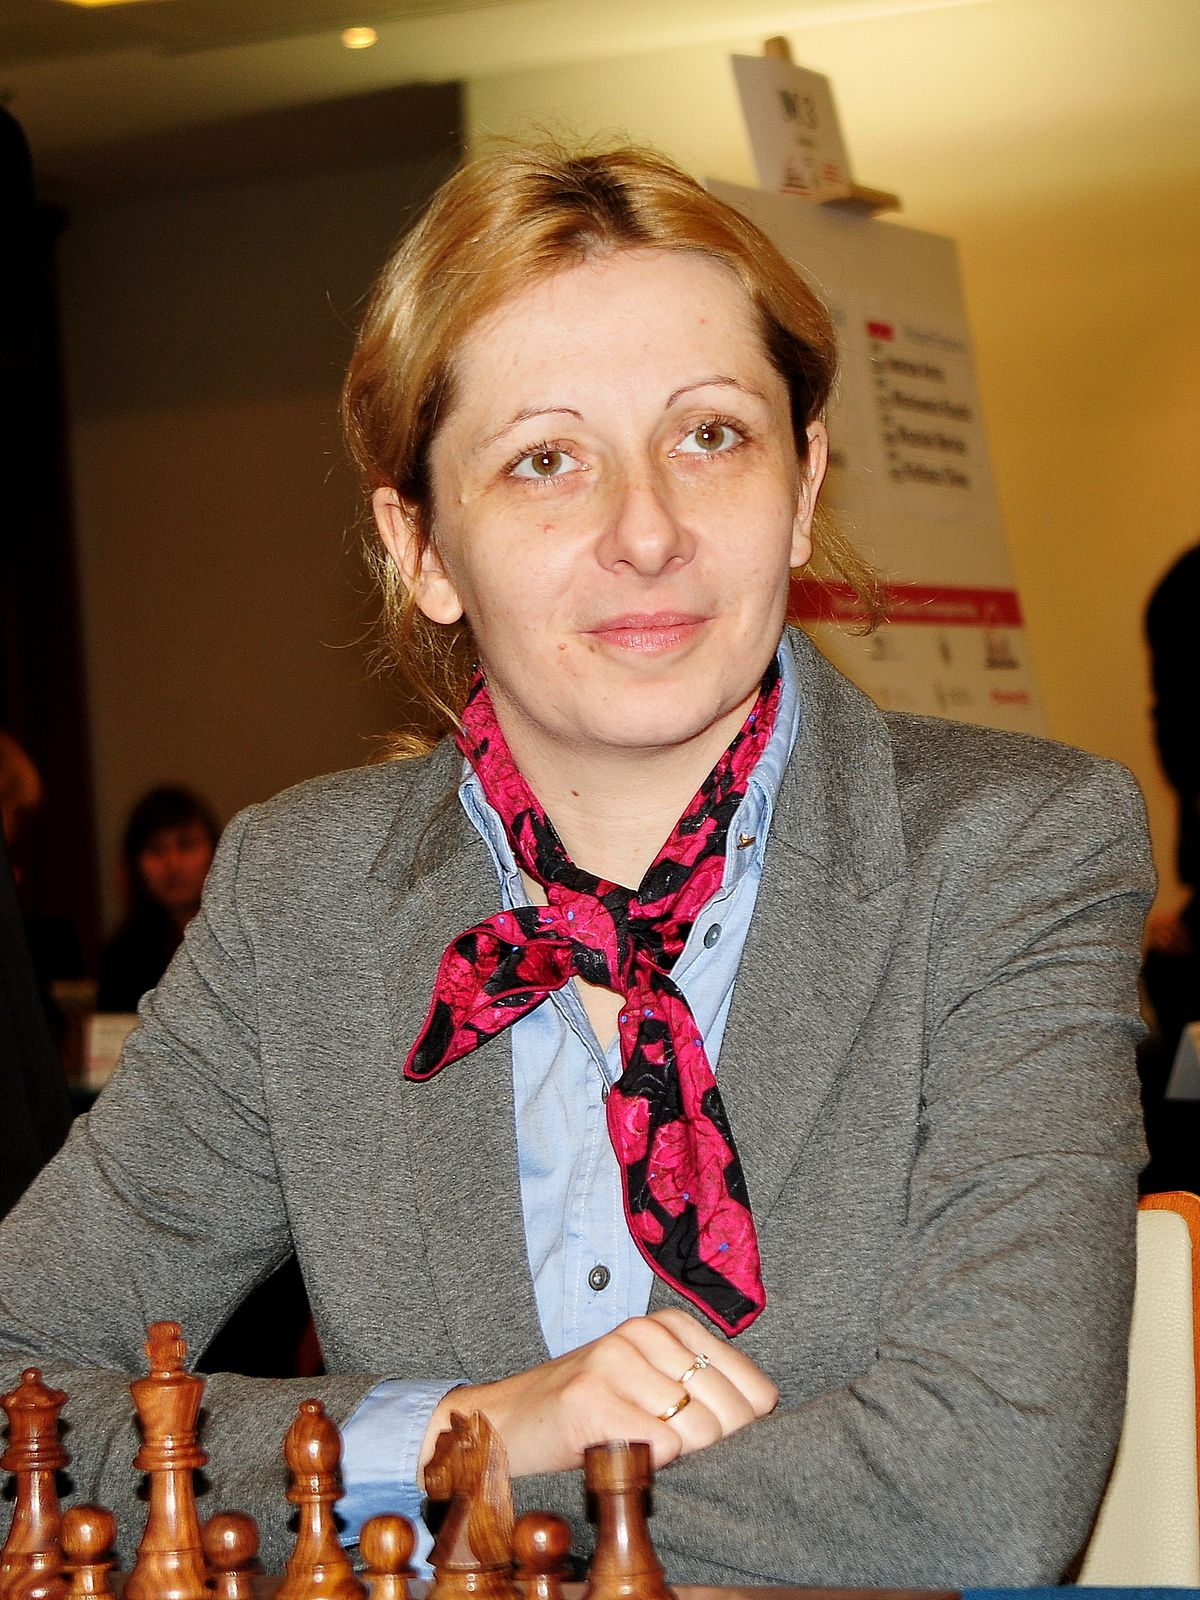 Monika Soćko - Wikipedia